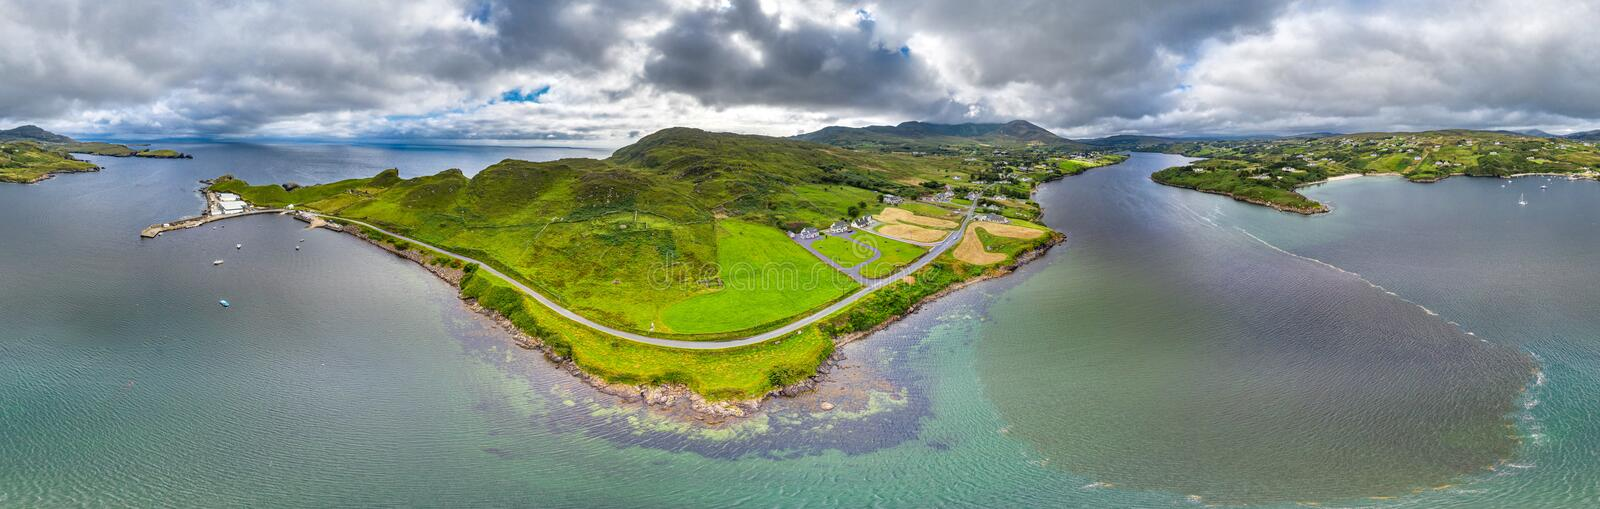 Aerial view of Teelin Bay in County Donegal on the Wild Atlantic Way in Ireland royalty free stock photography